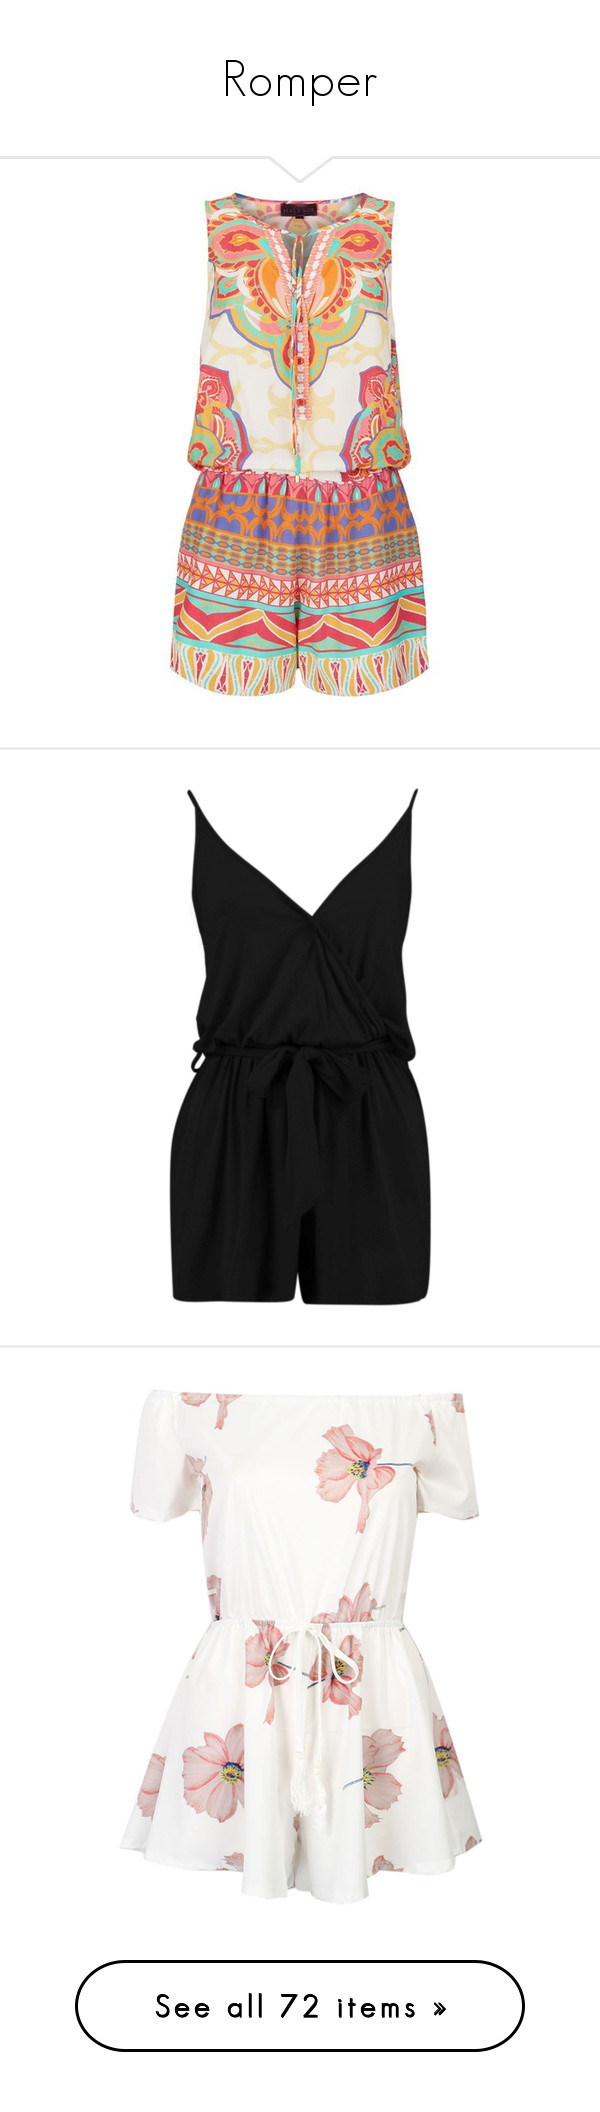 """""""Romper"""" by tlb0318 ❤ liked on Polyvore featuring romper, jumpsuits, rompers, playsuit, print romper, summer romper, playsuit romper, summer rompers, hale bob and dresses"""